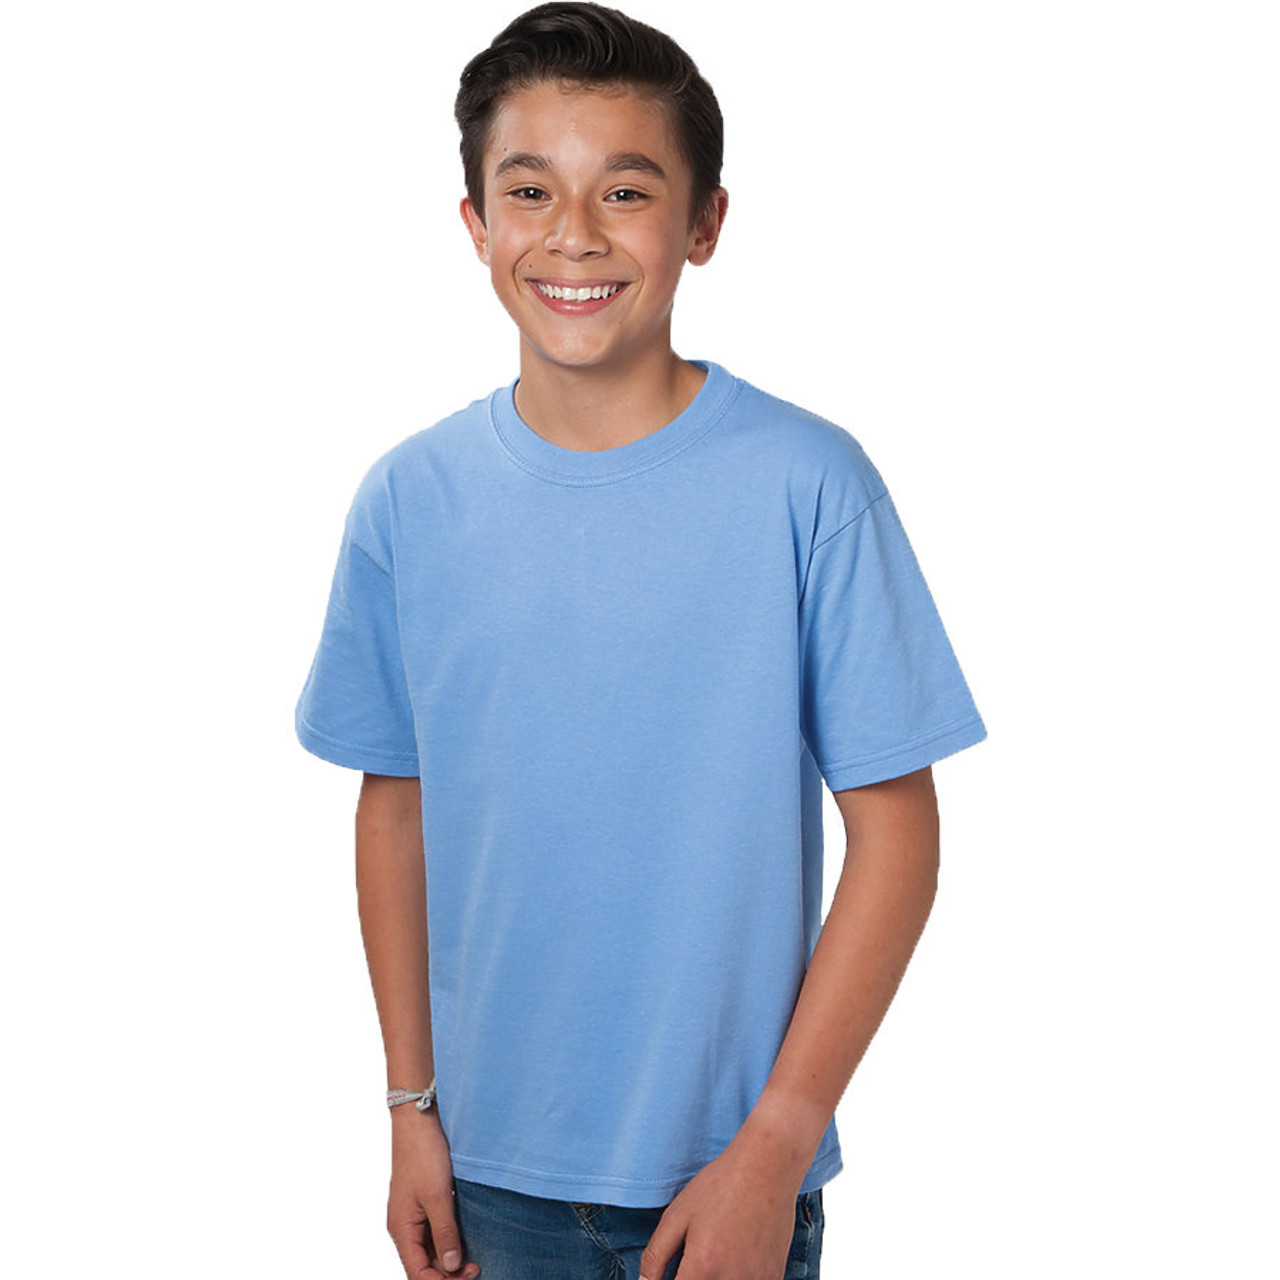 f4dec91c1f003 M&O Knits 4850 - Youth Soft Touch T-Shirt